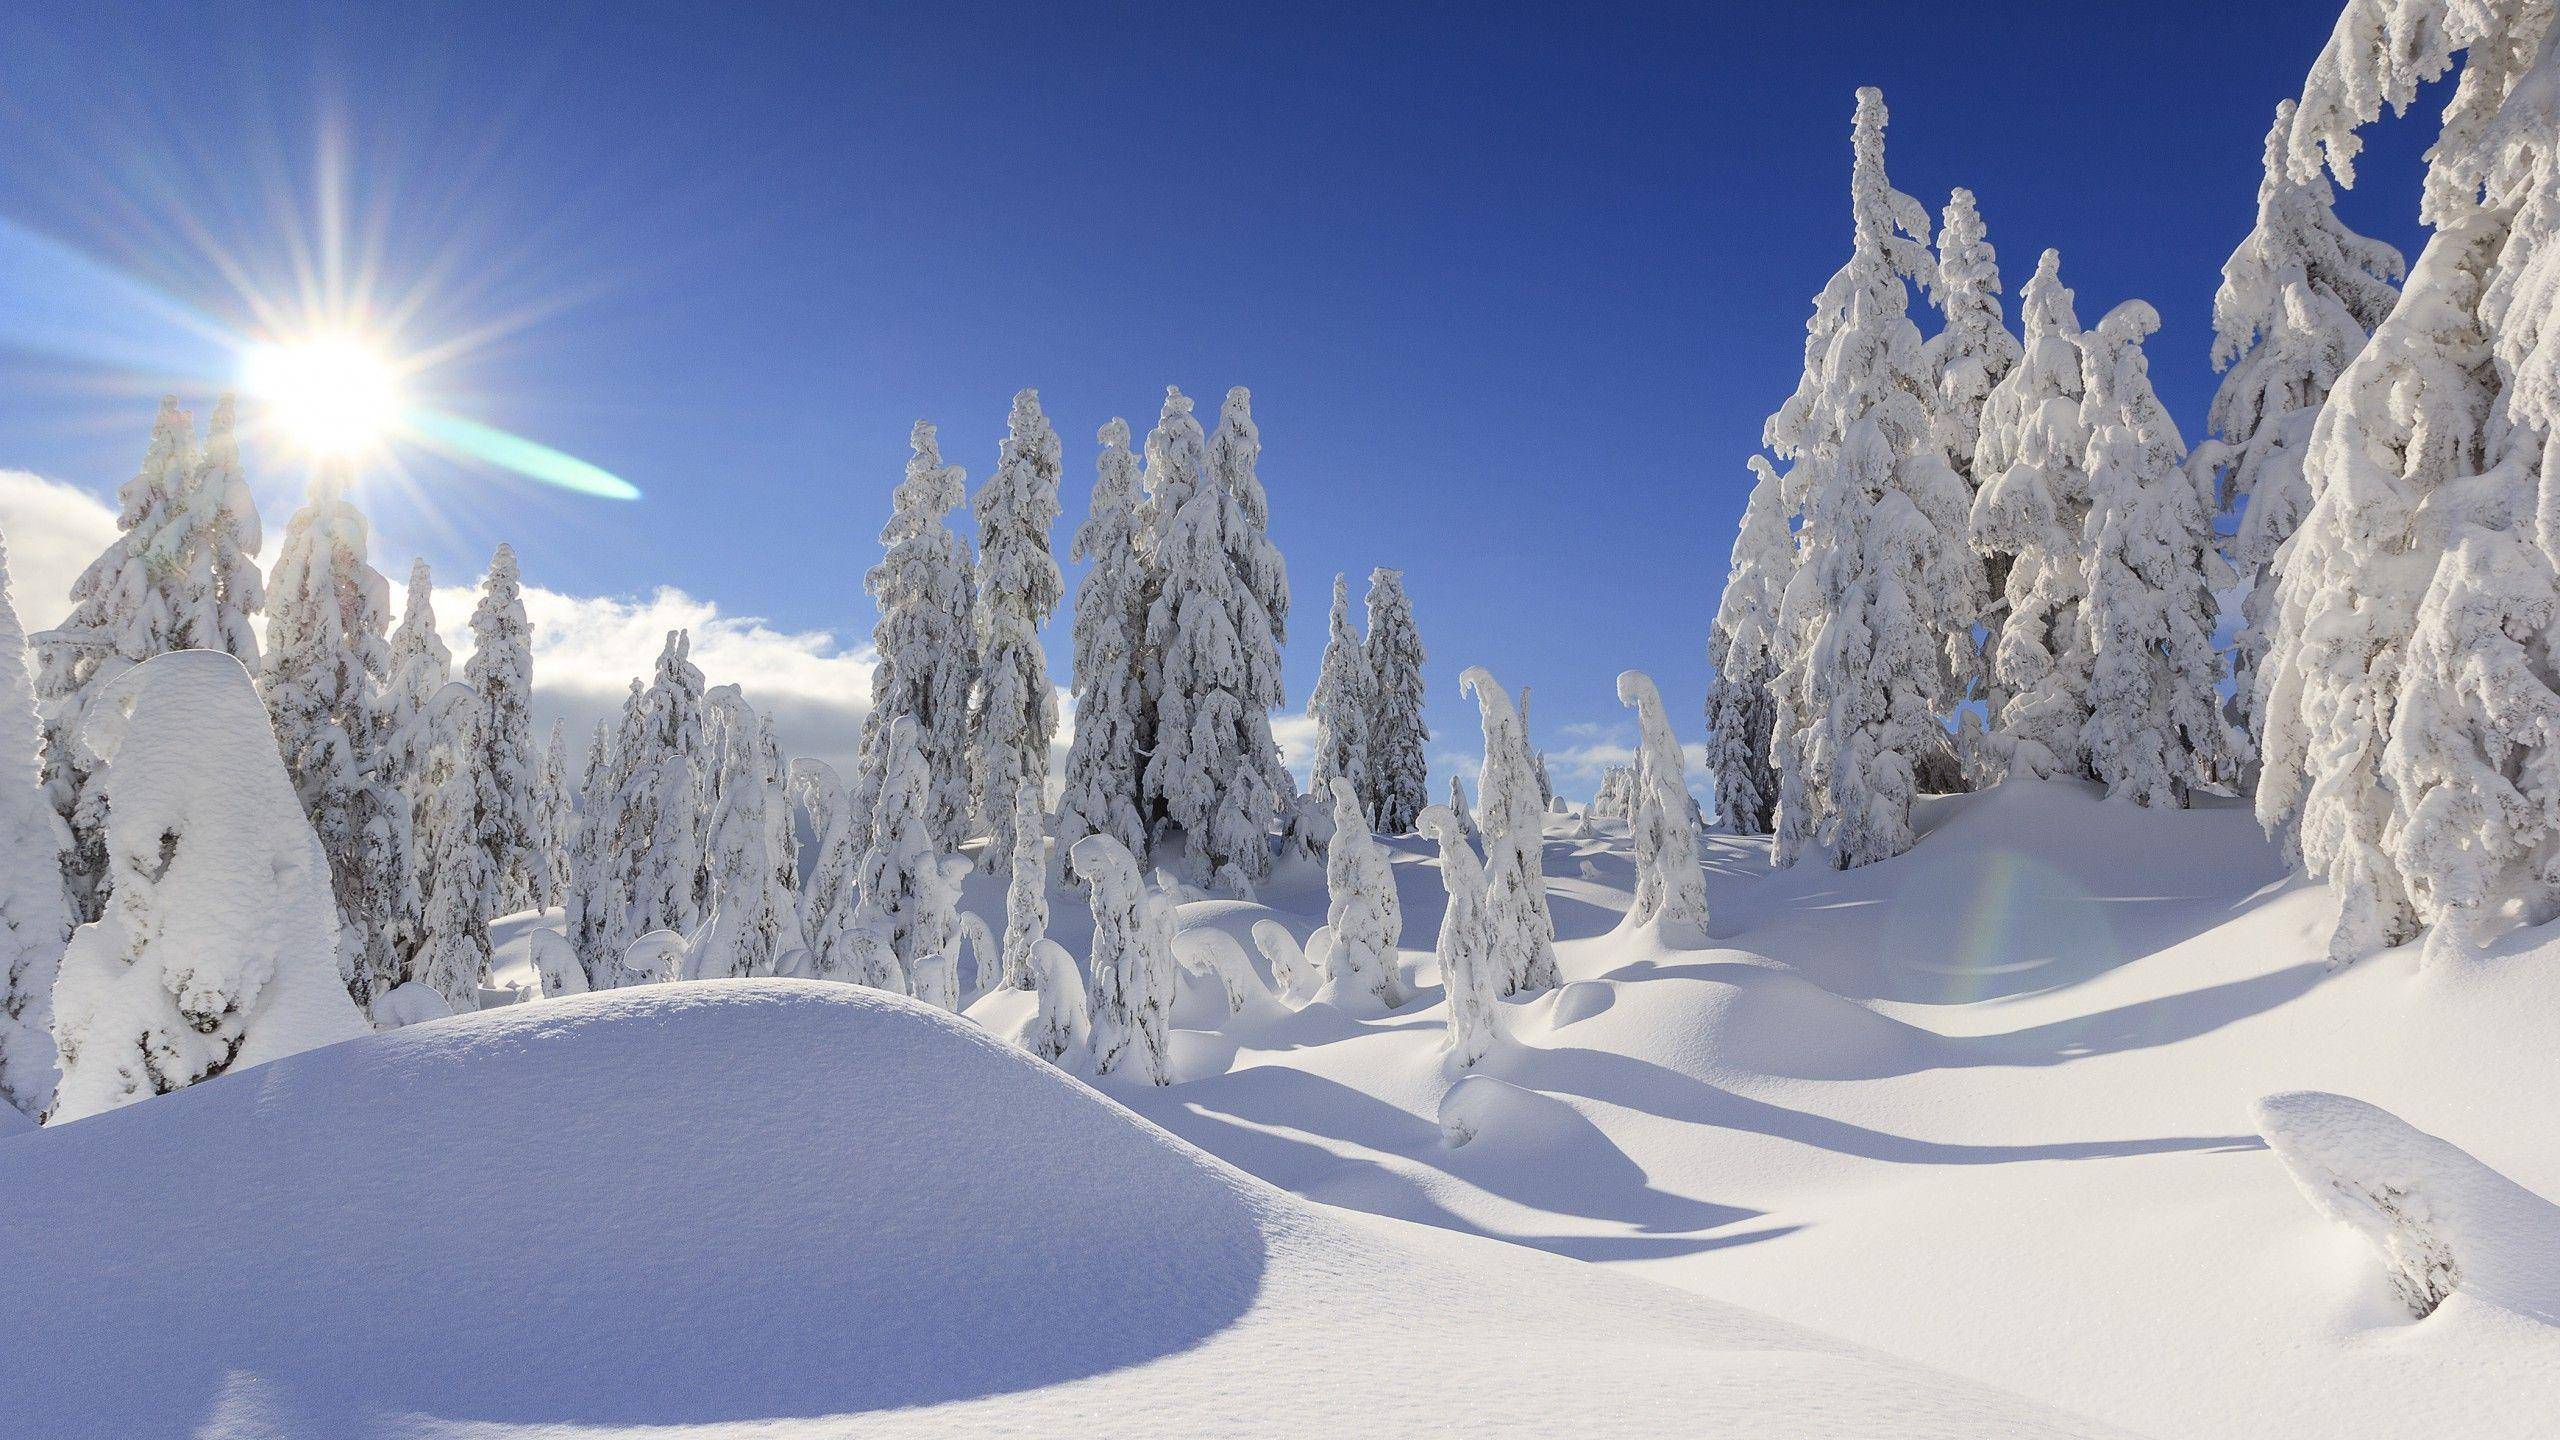 Winter Snowfall Wallpapers Wallpaper Cave